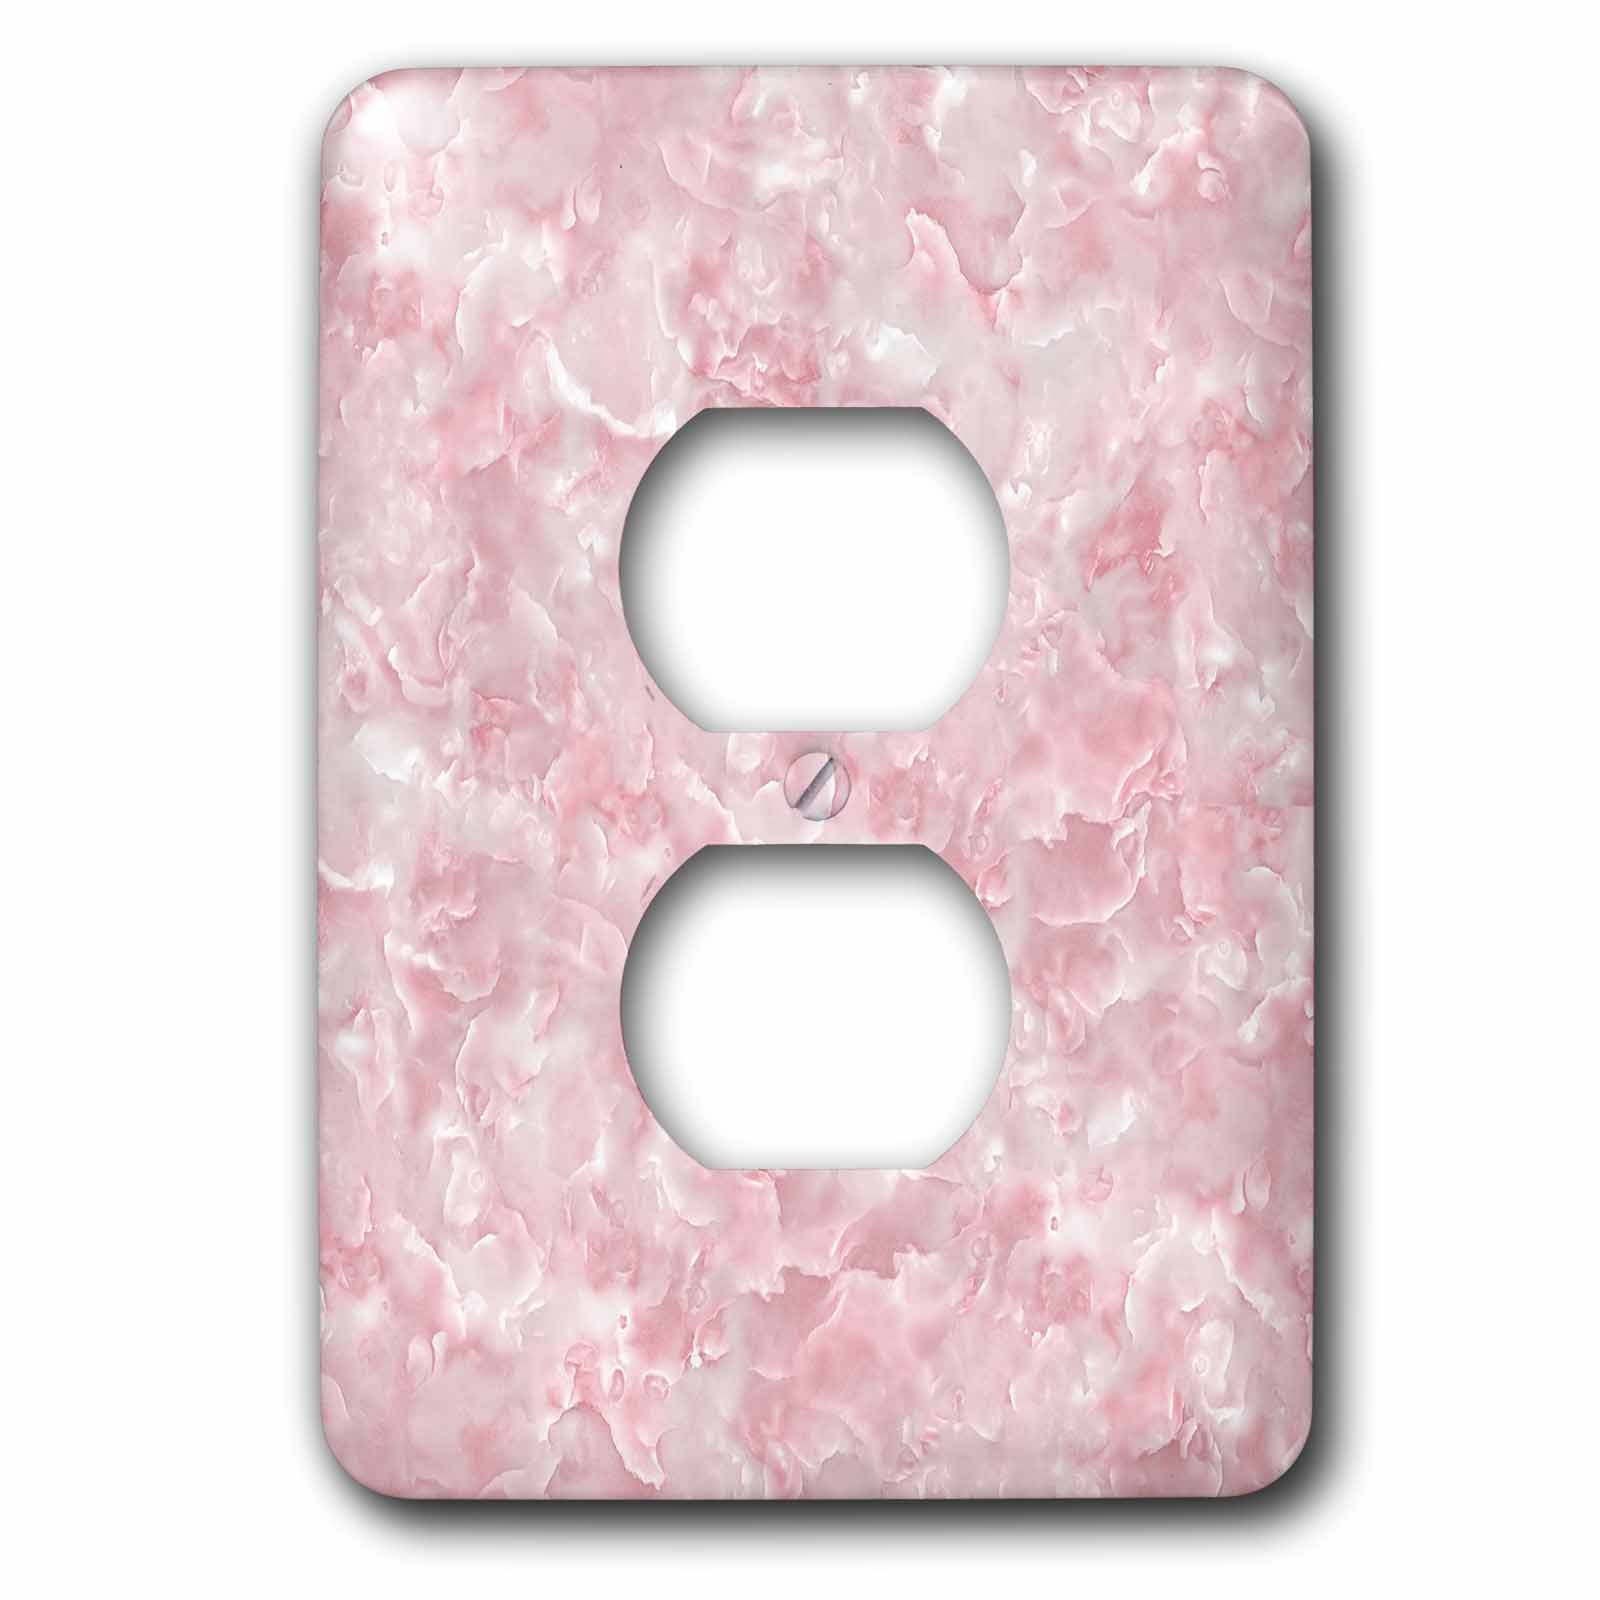 3dRose Uta Naumann Faux Glitter Pattern - Image of Trendy Luxury Rose Quartz Pink Gemstone Agate Geode - Light Switch Covers - 2 plug outlet cover (lsp_275121_6)